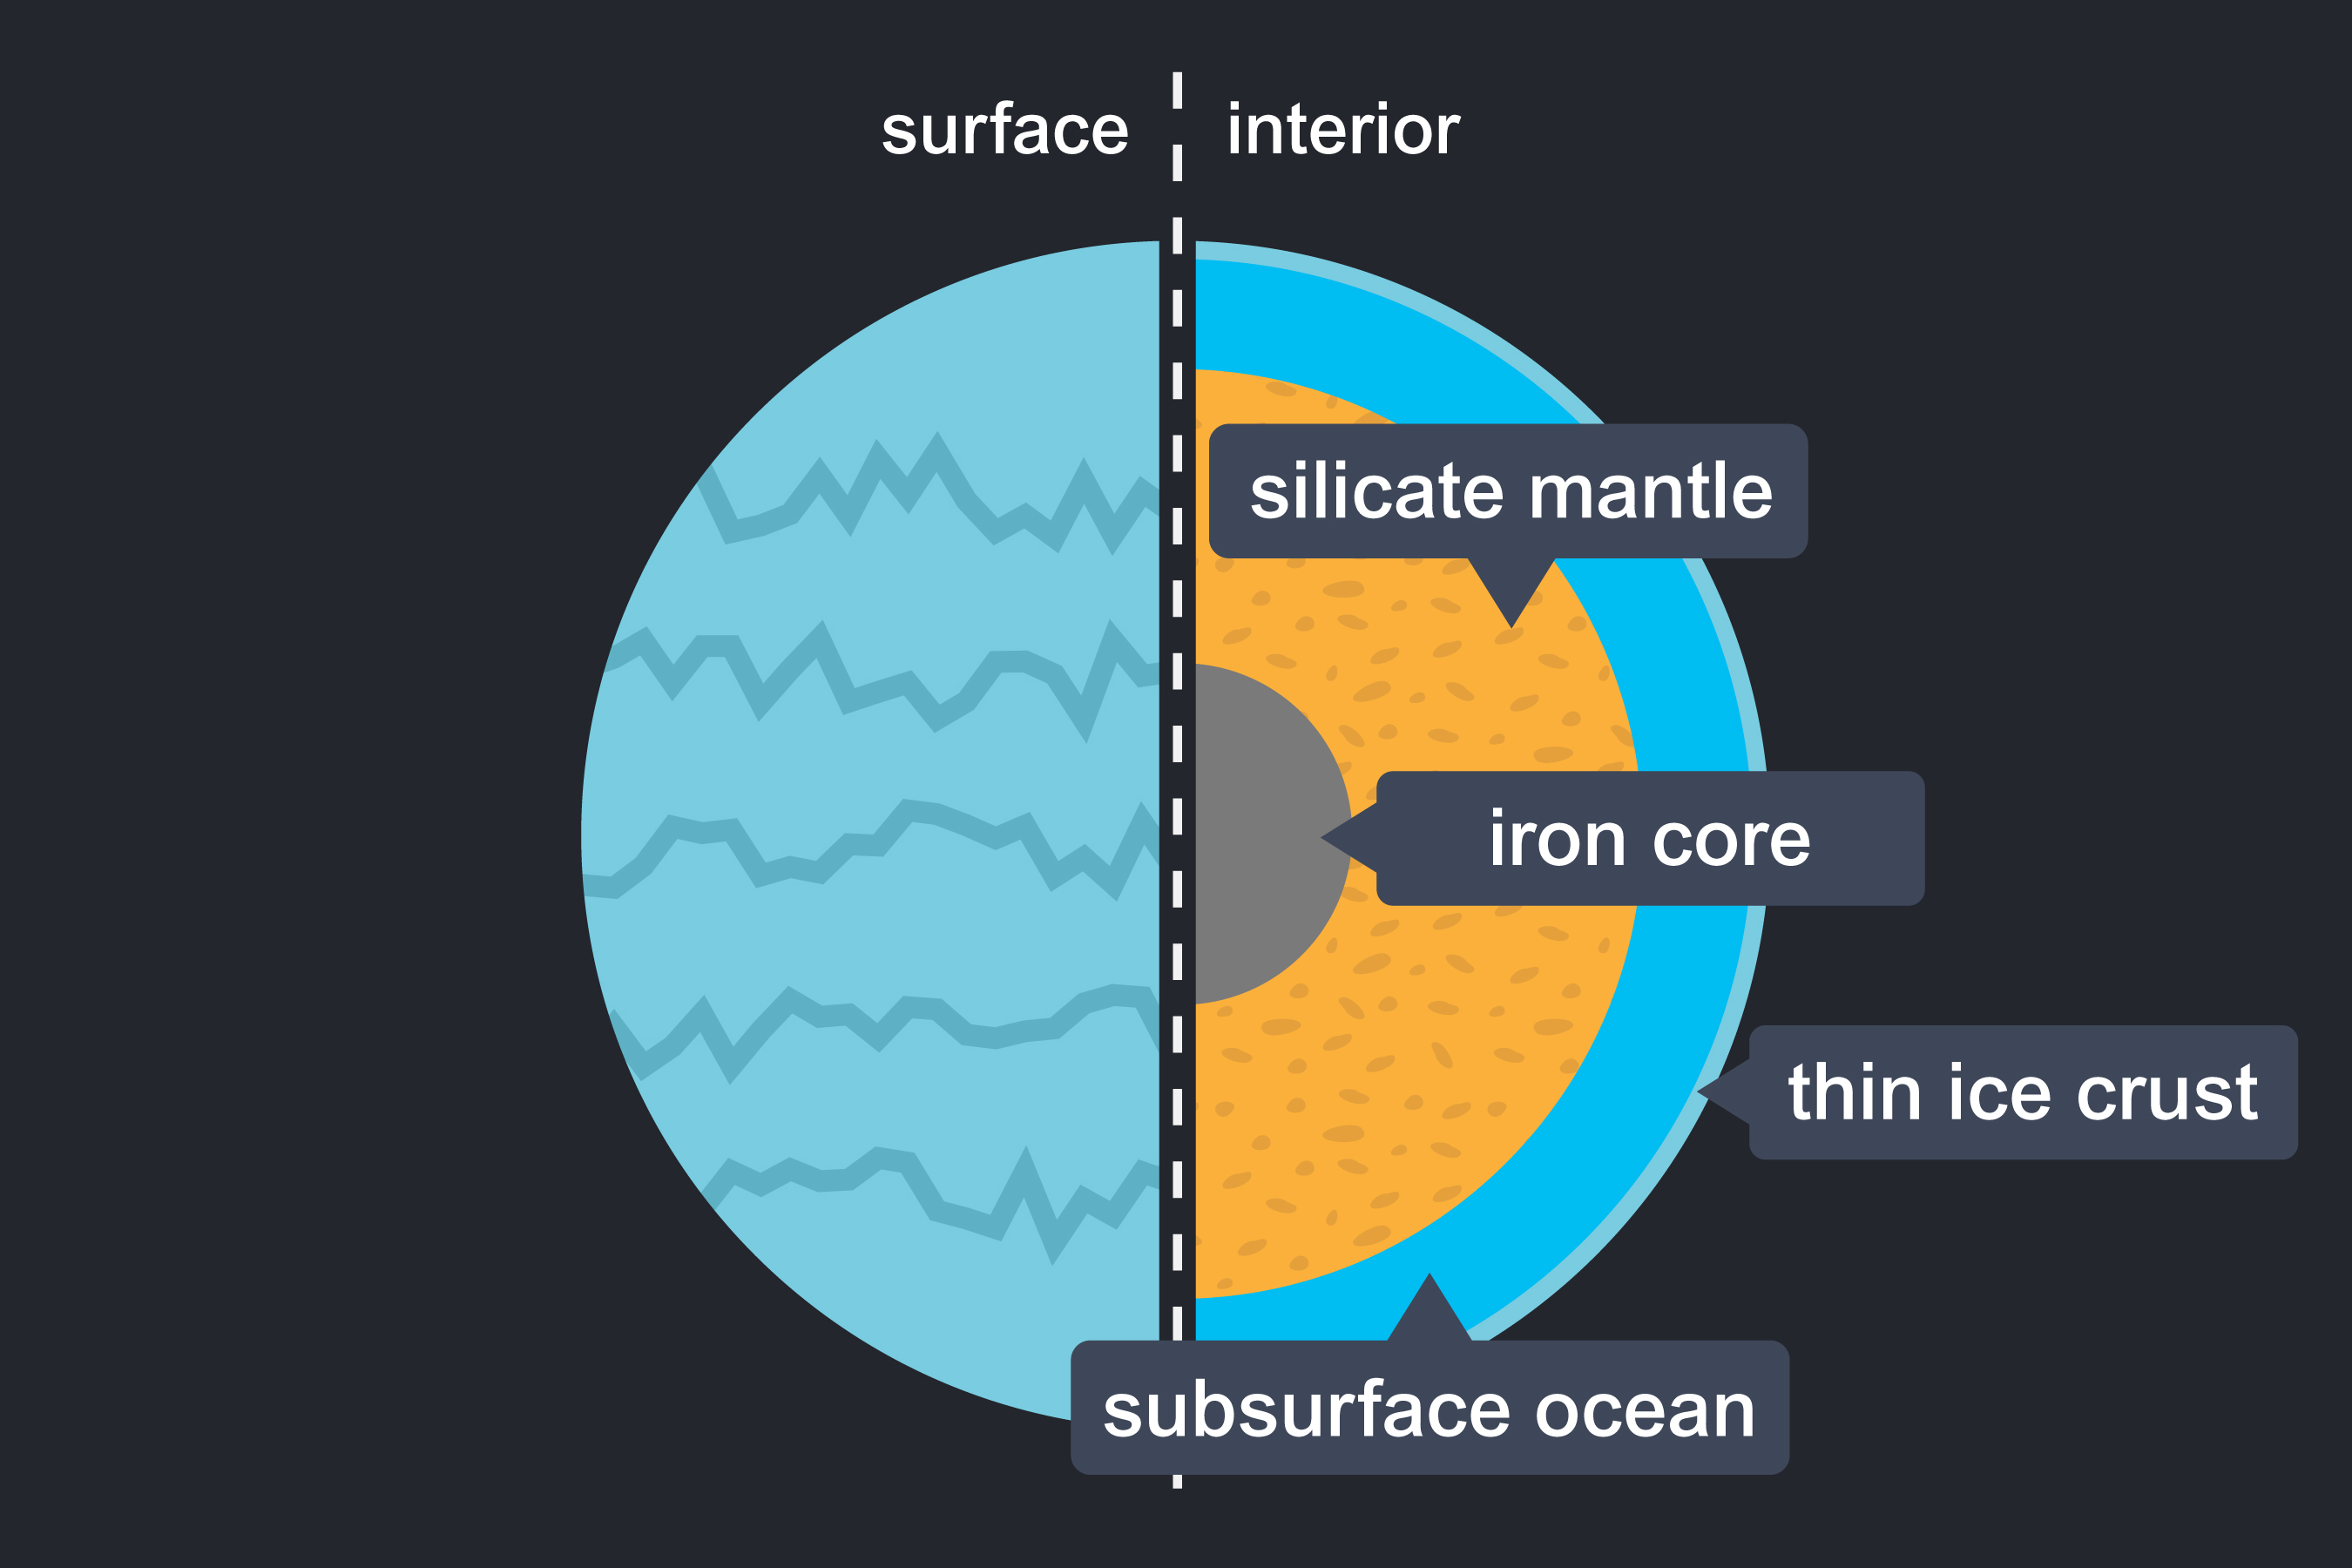 A fully labelled cross section of the interior of Europa. The left side shows an illustrated surface of Europa. The right side shows an illustrated interior of Europa. The labels show (from centre to surface): iron core, silicate mantle, subsurface ocean, thin ice crust.